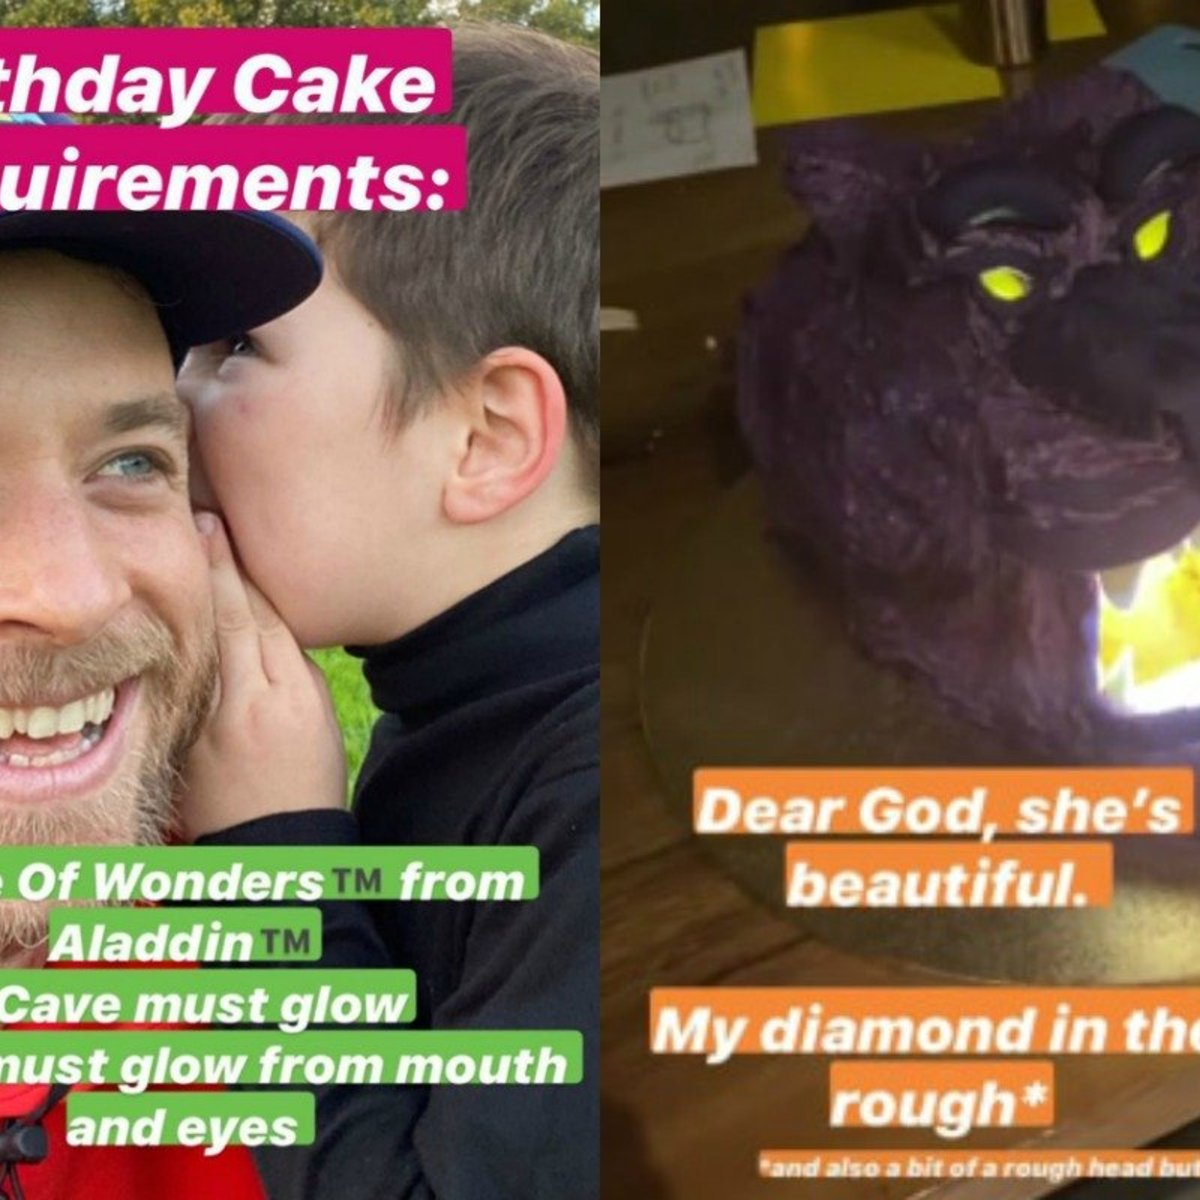 Stupendous Hamish Blake Cake 2020 Hes Outdone Himself With An Aladdin Cake Personalised Birthday Cards Petedlily Jamesorg